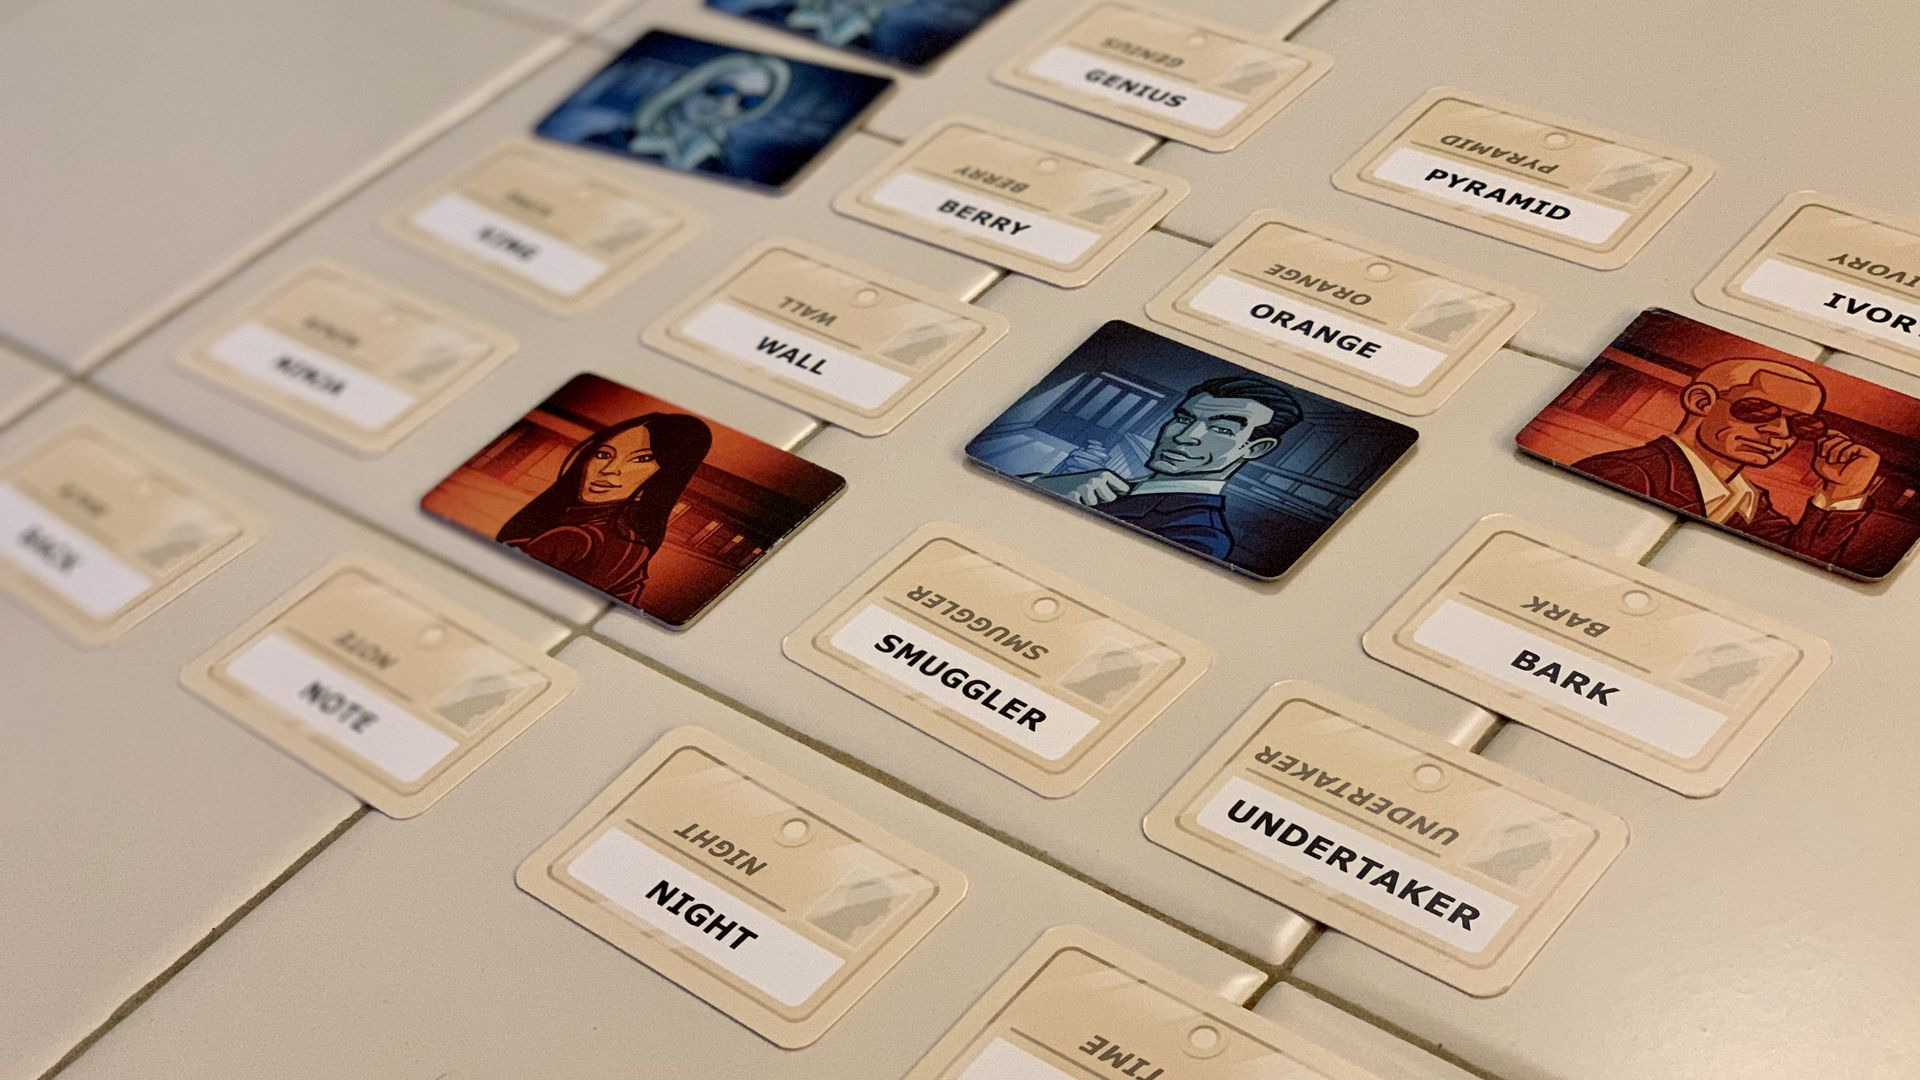 Photo of a game board with a grid of 25 words, some covered by cards